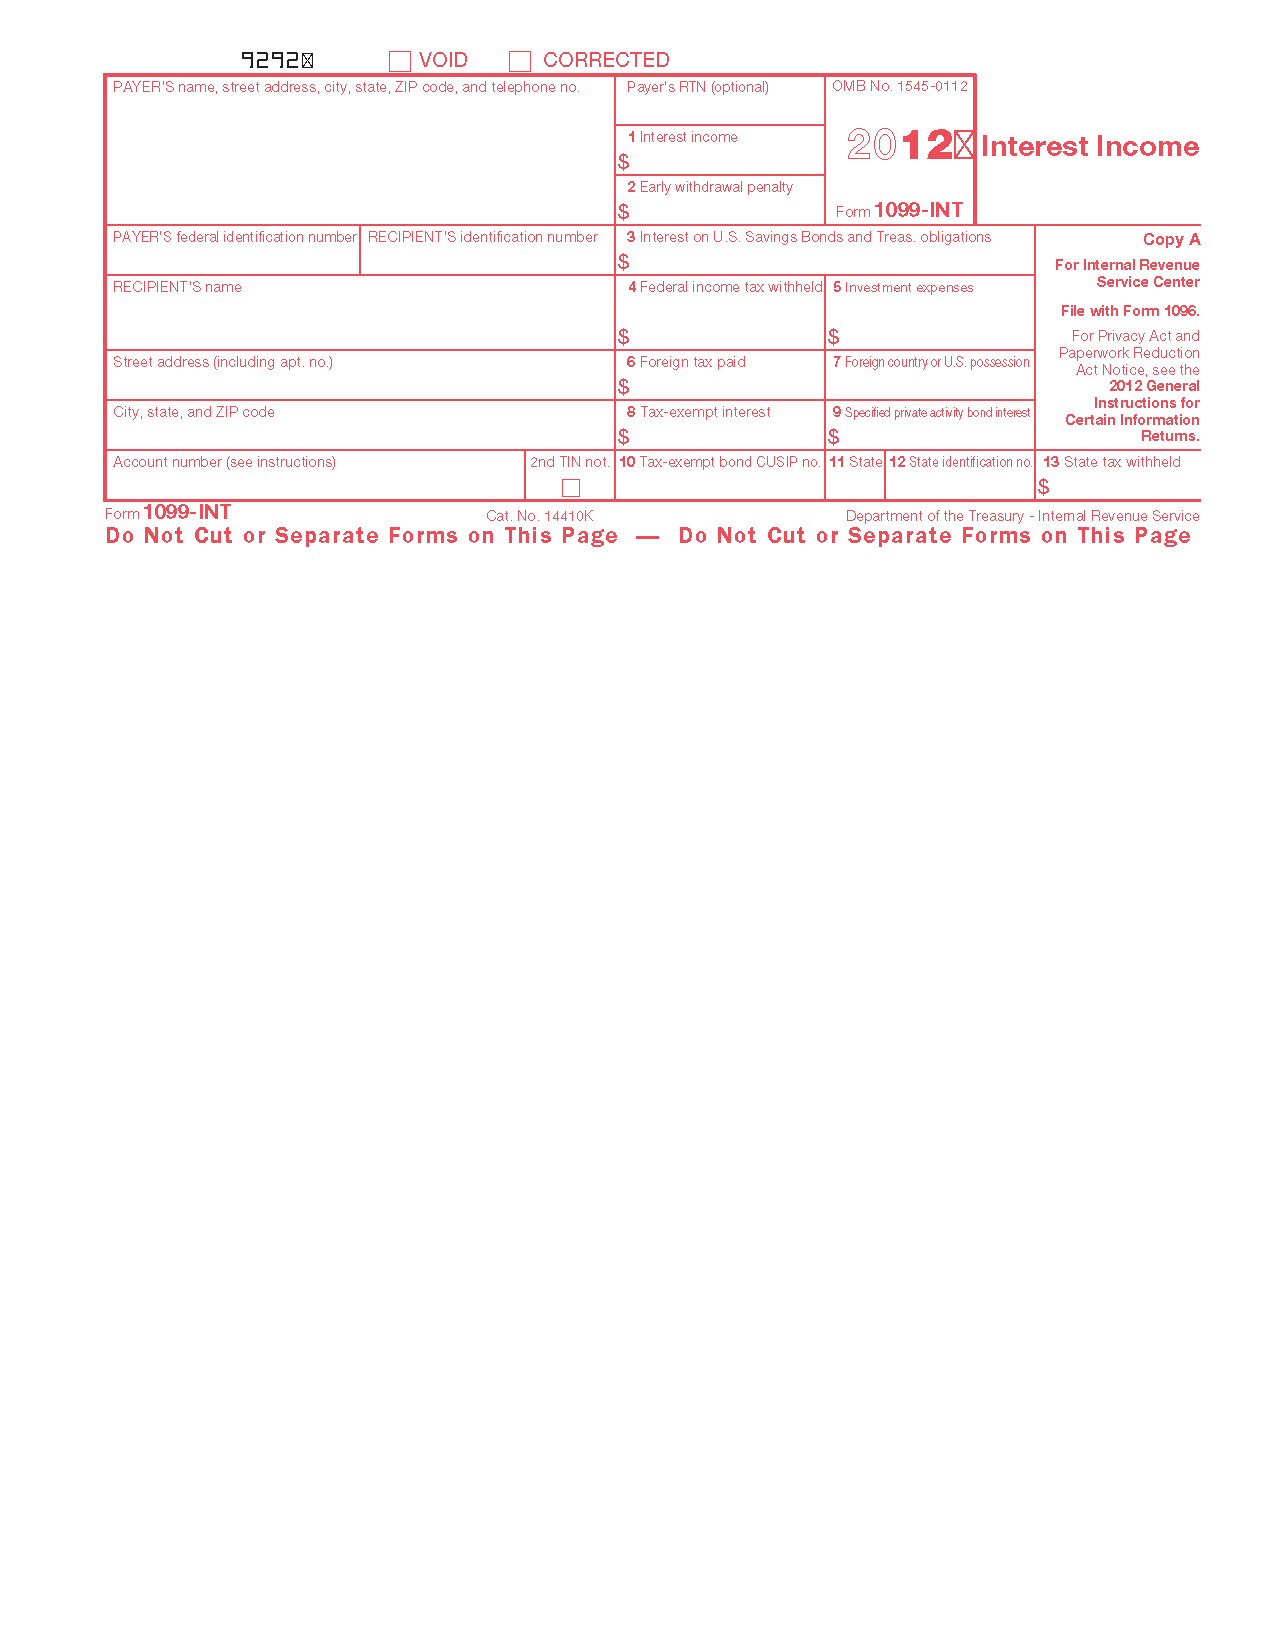 Form 1099 int interest income info copy only view all 2011 irs tax forms falaconquin